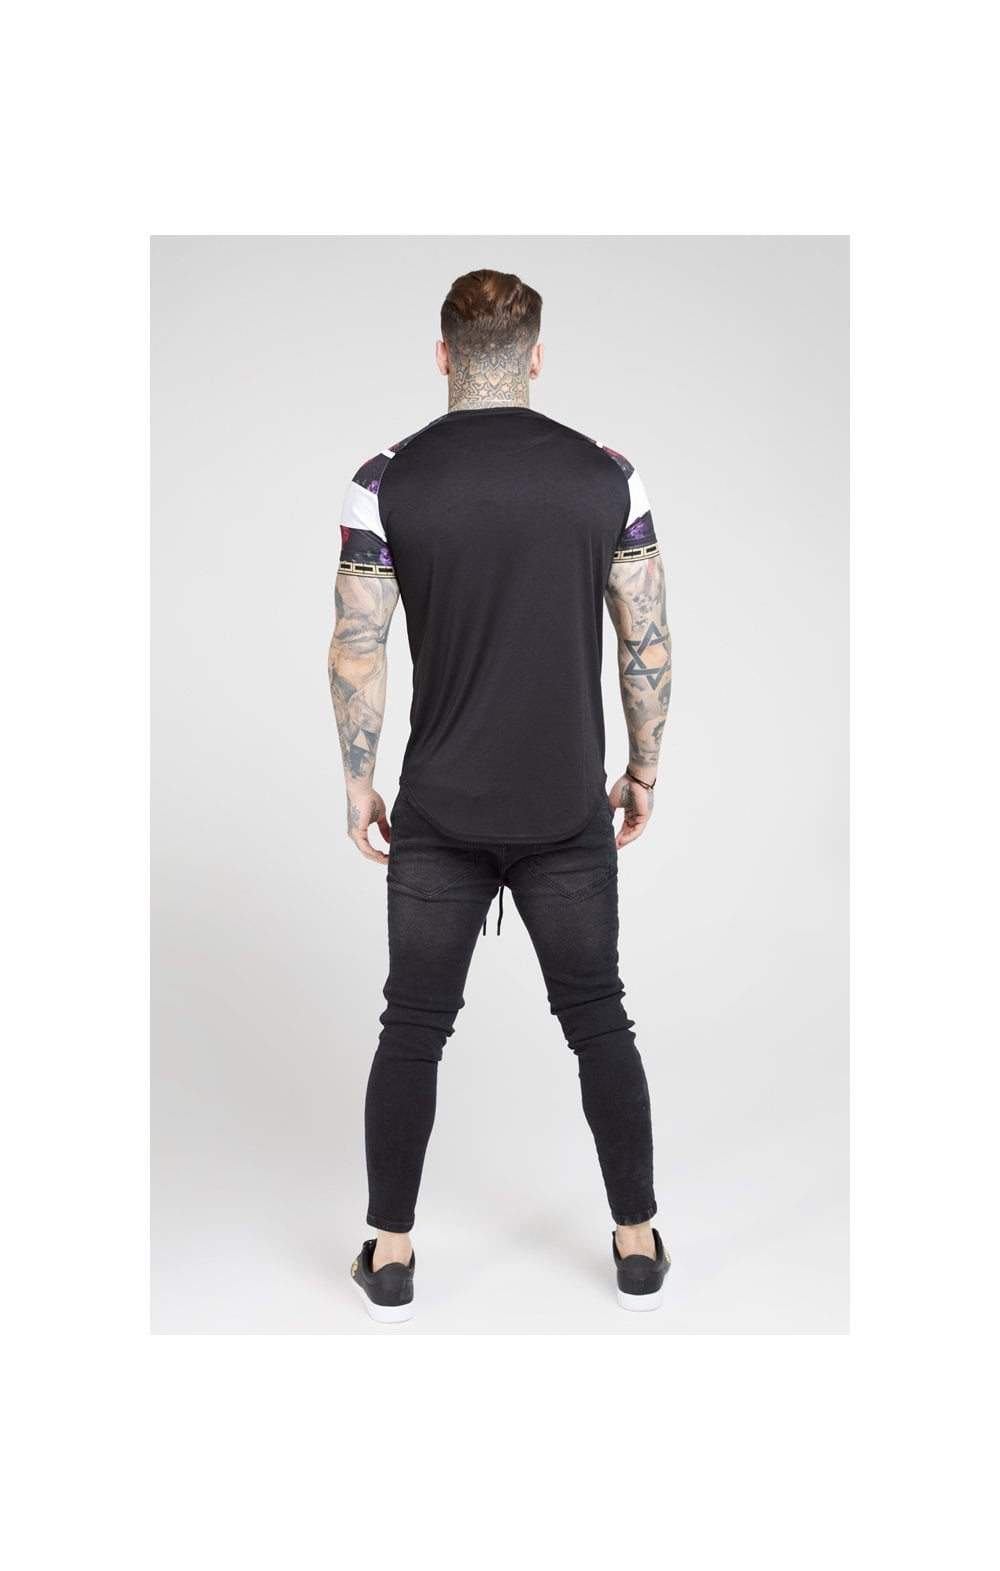 Load image into Gallery viewer, SikSilk S/S Raglan Sprint Tape Tee - Black & Oil Paint (5)